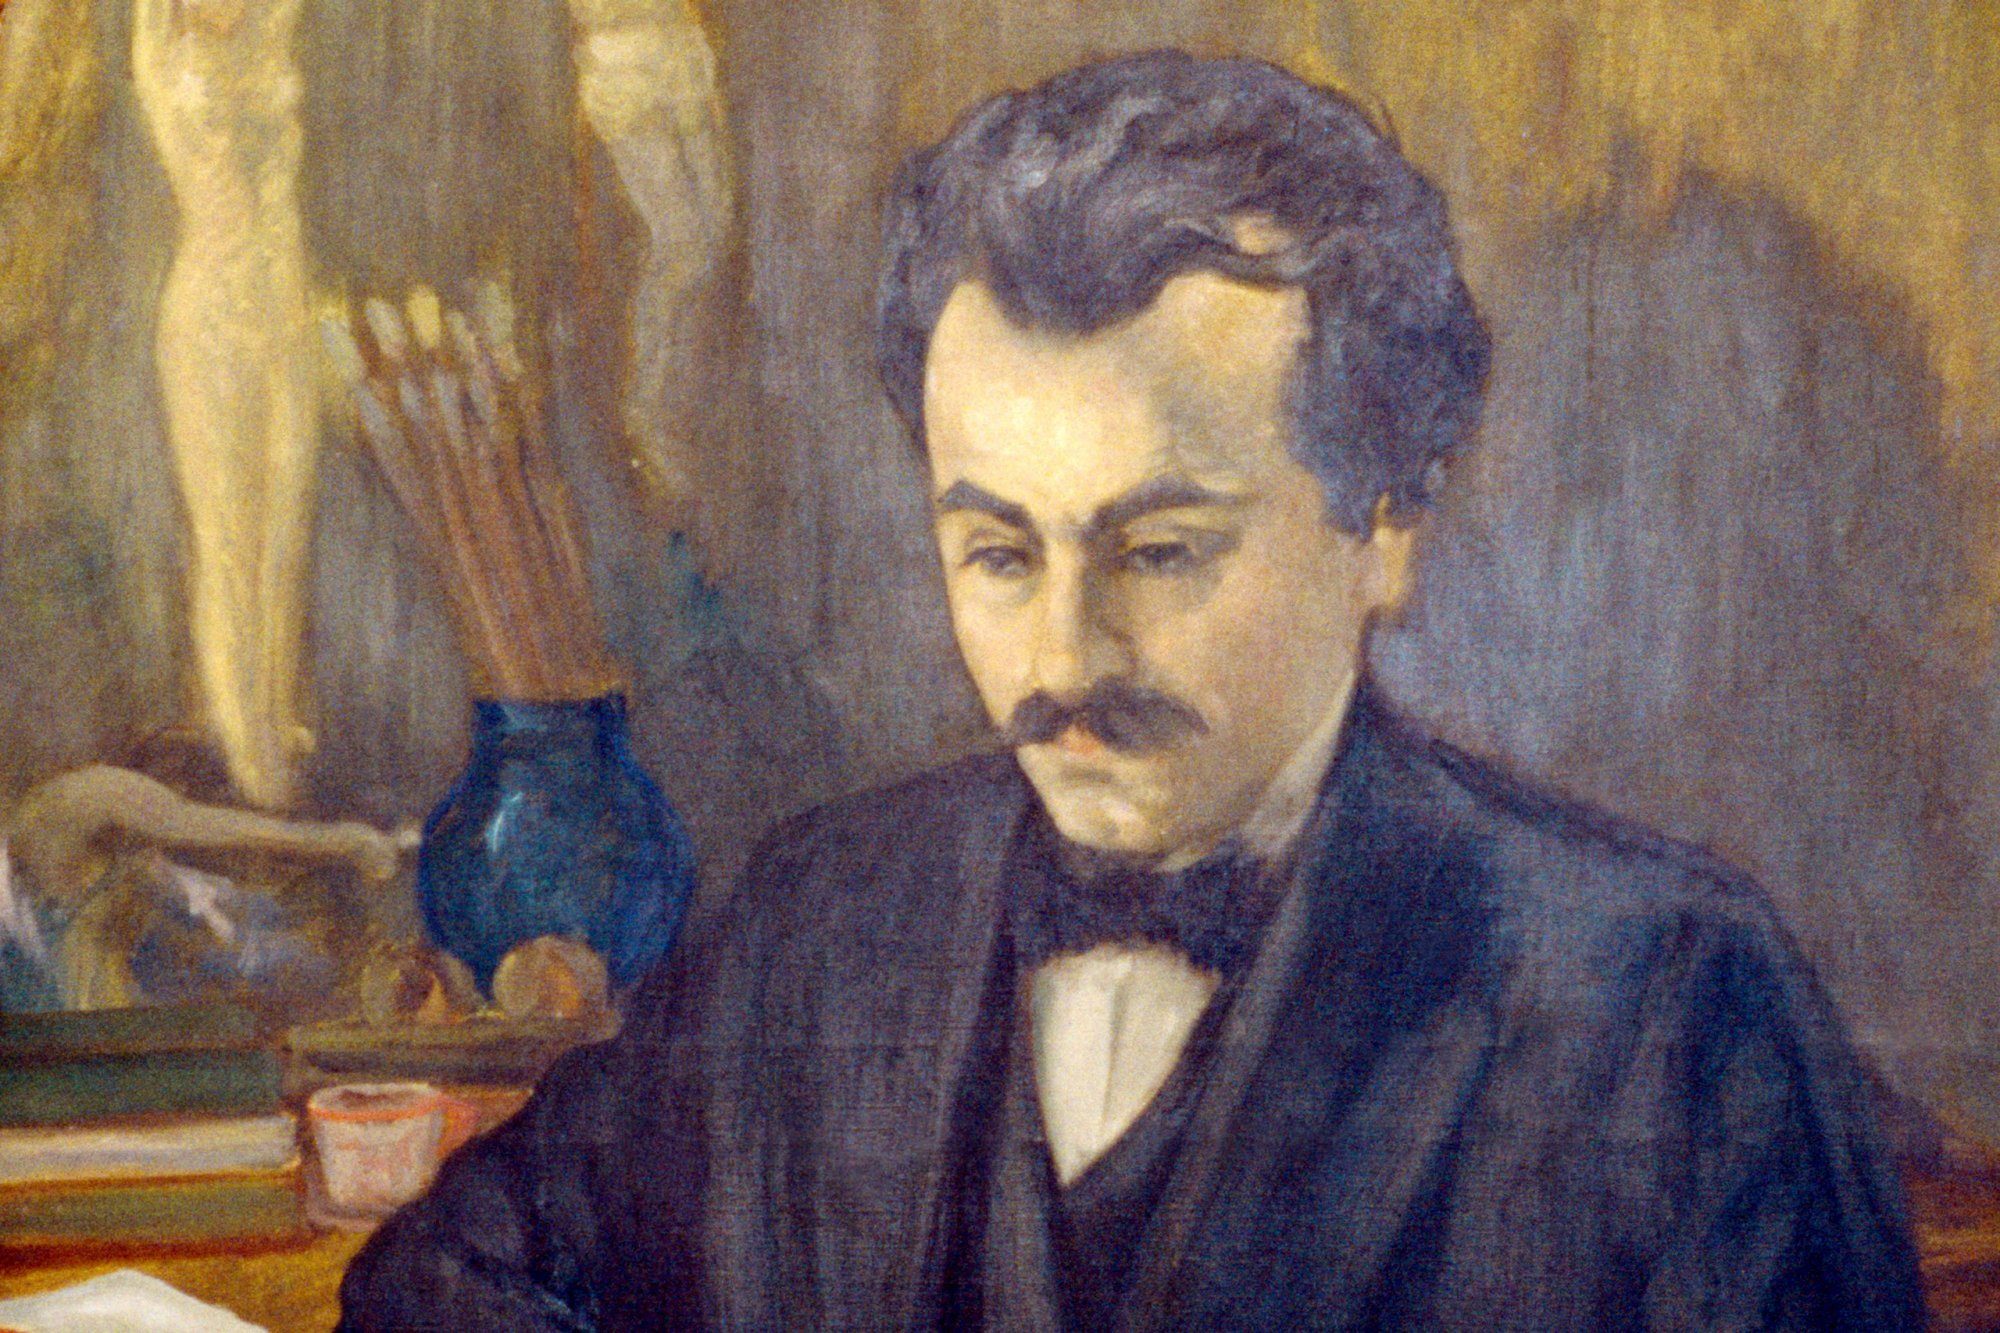 Top Quotes of Kahlil Gibran: A Literary Hero